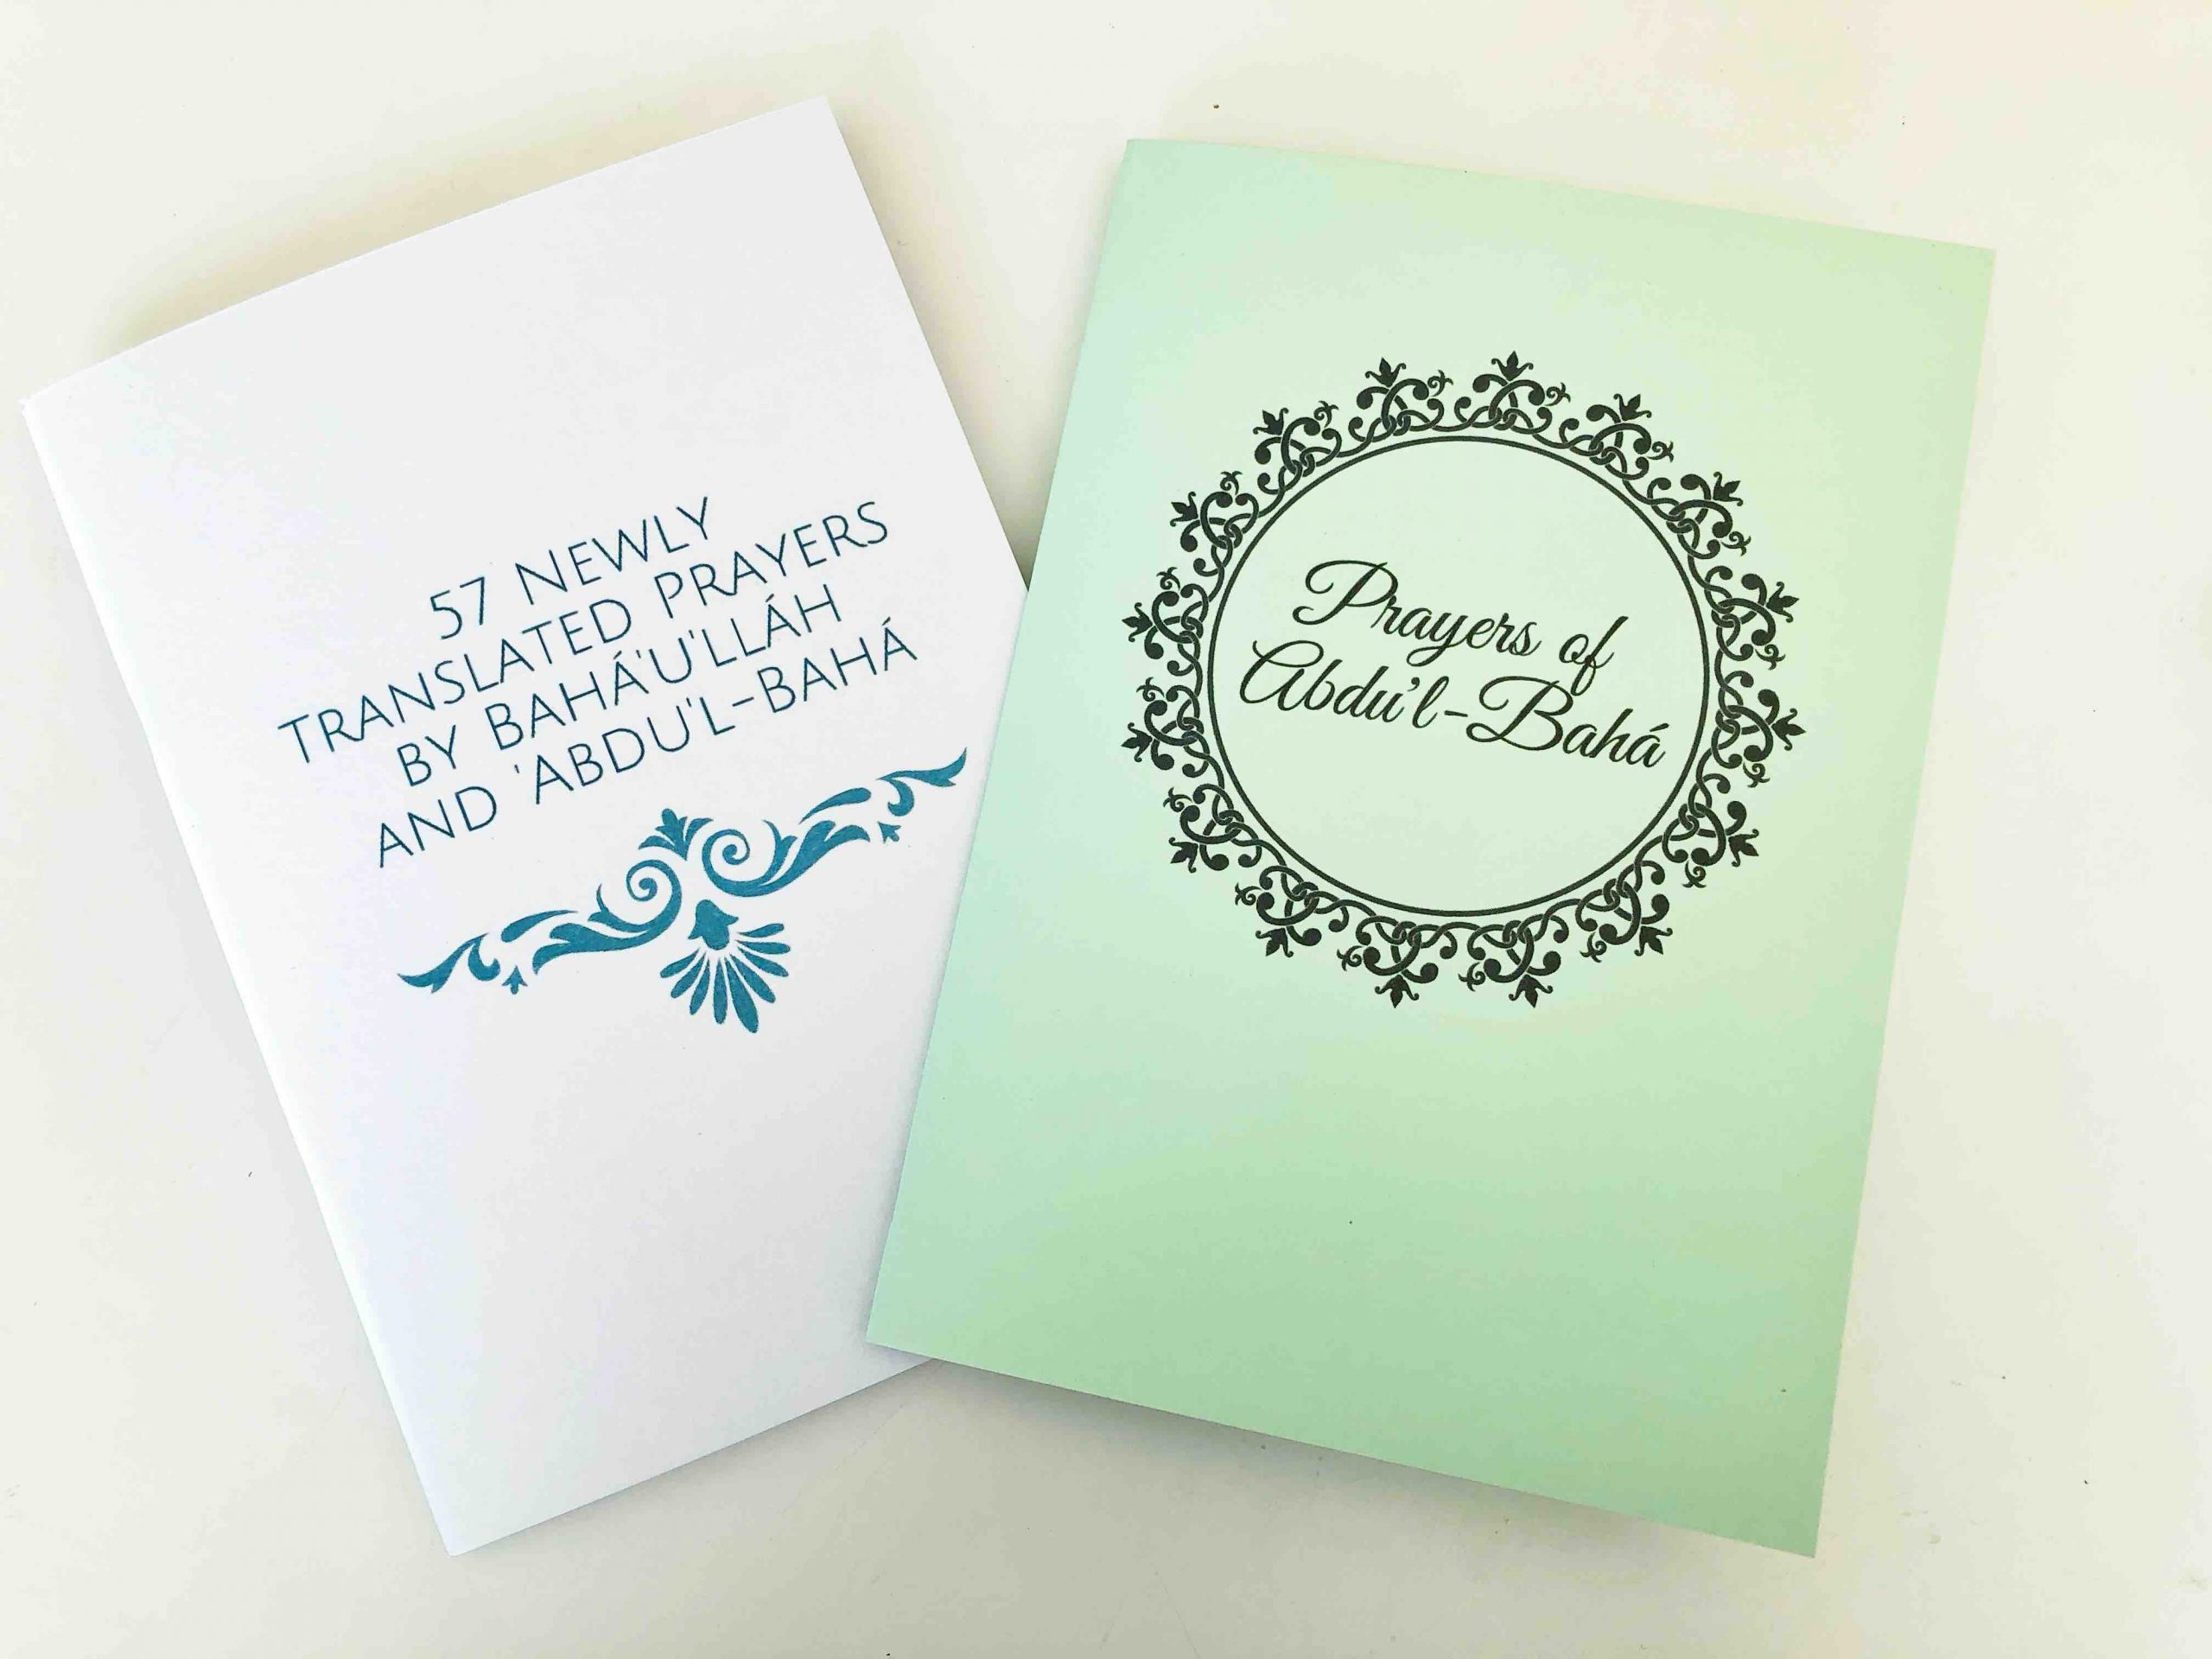 Booklet for 57 Newly Translated Prayers of Baha'u'llah and Abdu'l-Baha